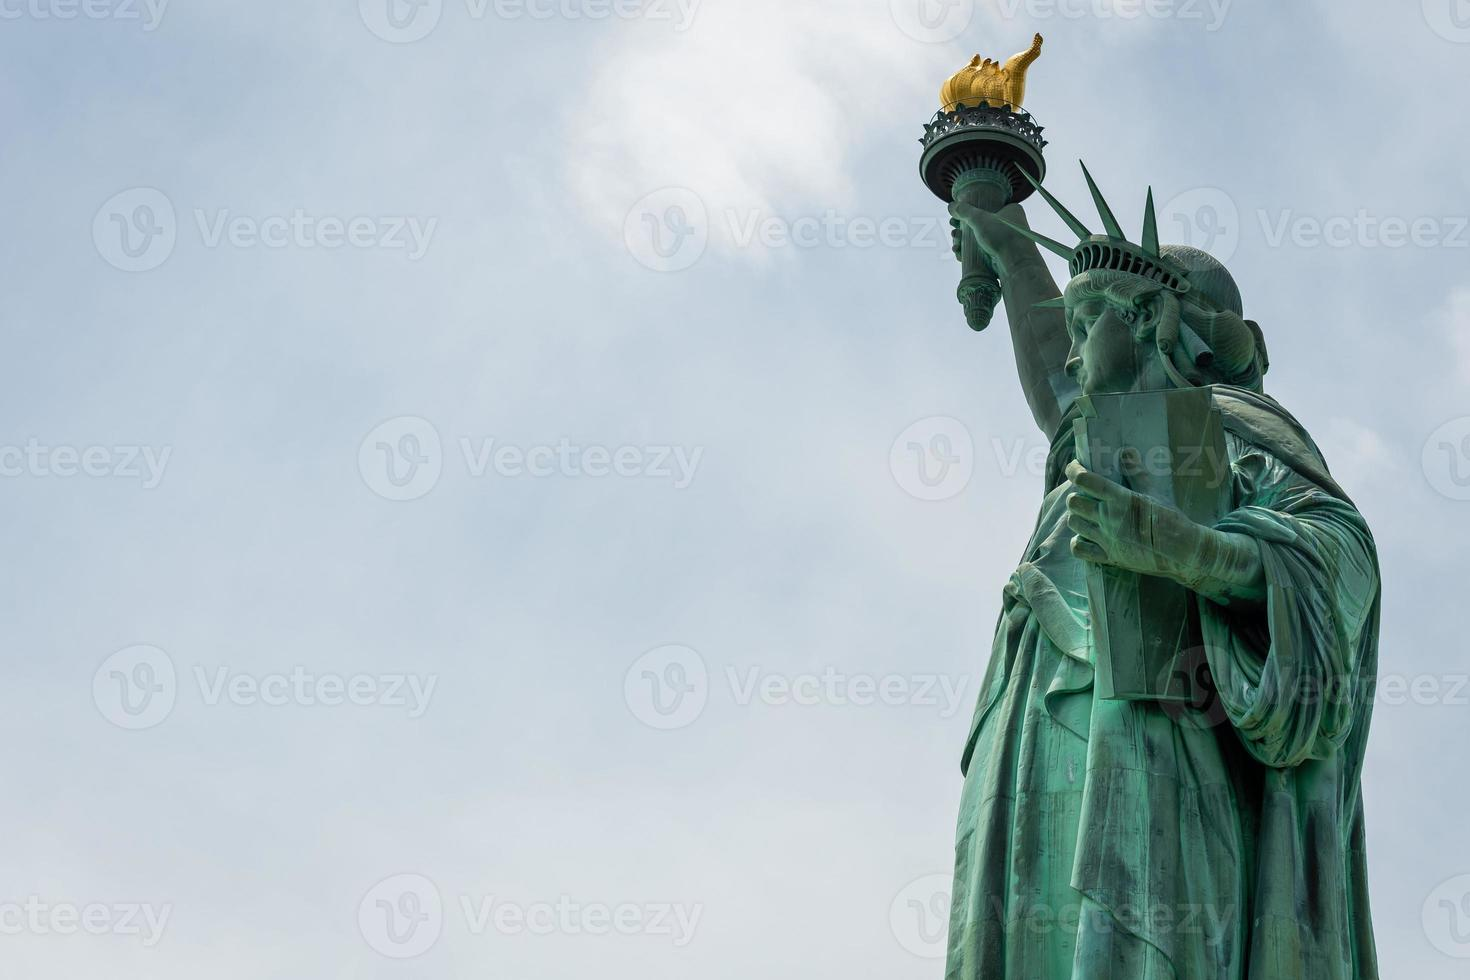 Statue of Liberty close-up on a sunny day photo